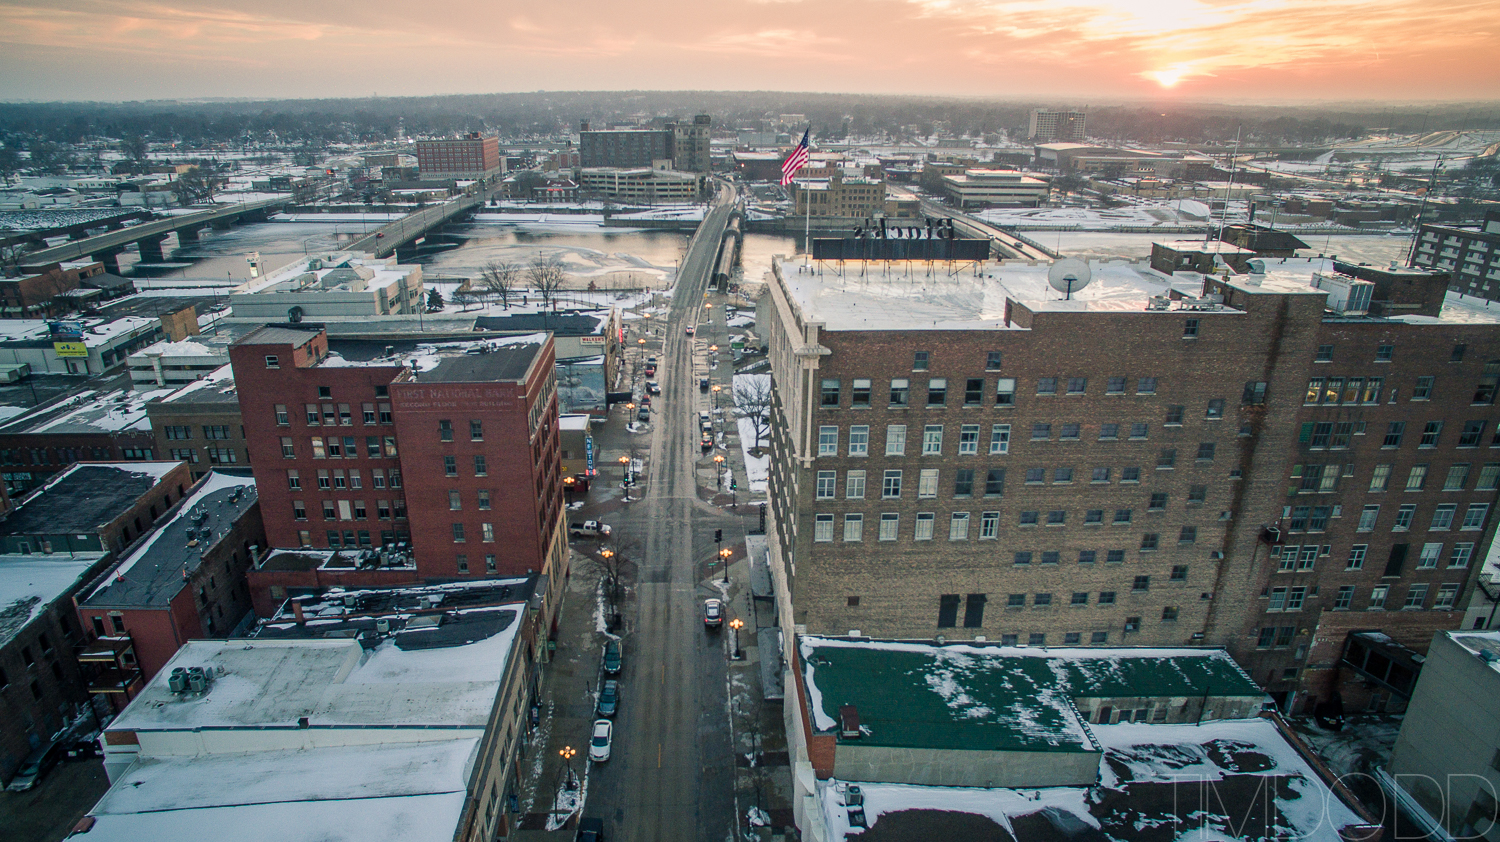 Downtown Waterloo Iowa aerial photography DJI Inspire 1 DNG edited Tim Dodd Photography raw picture